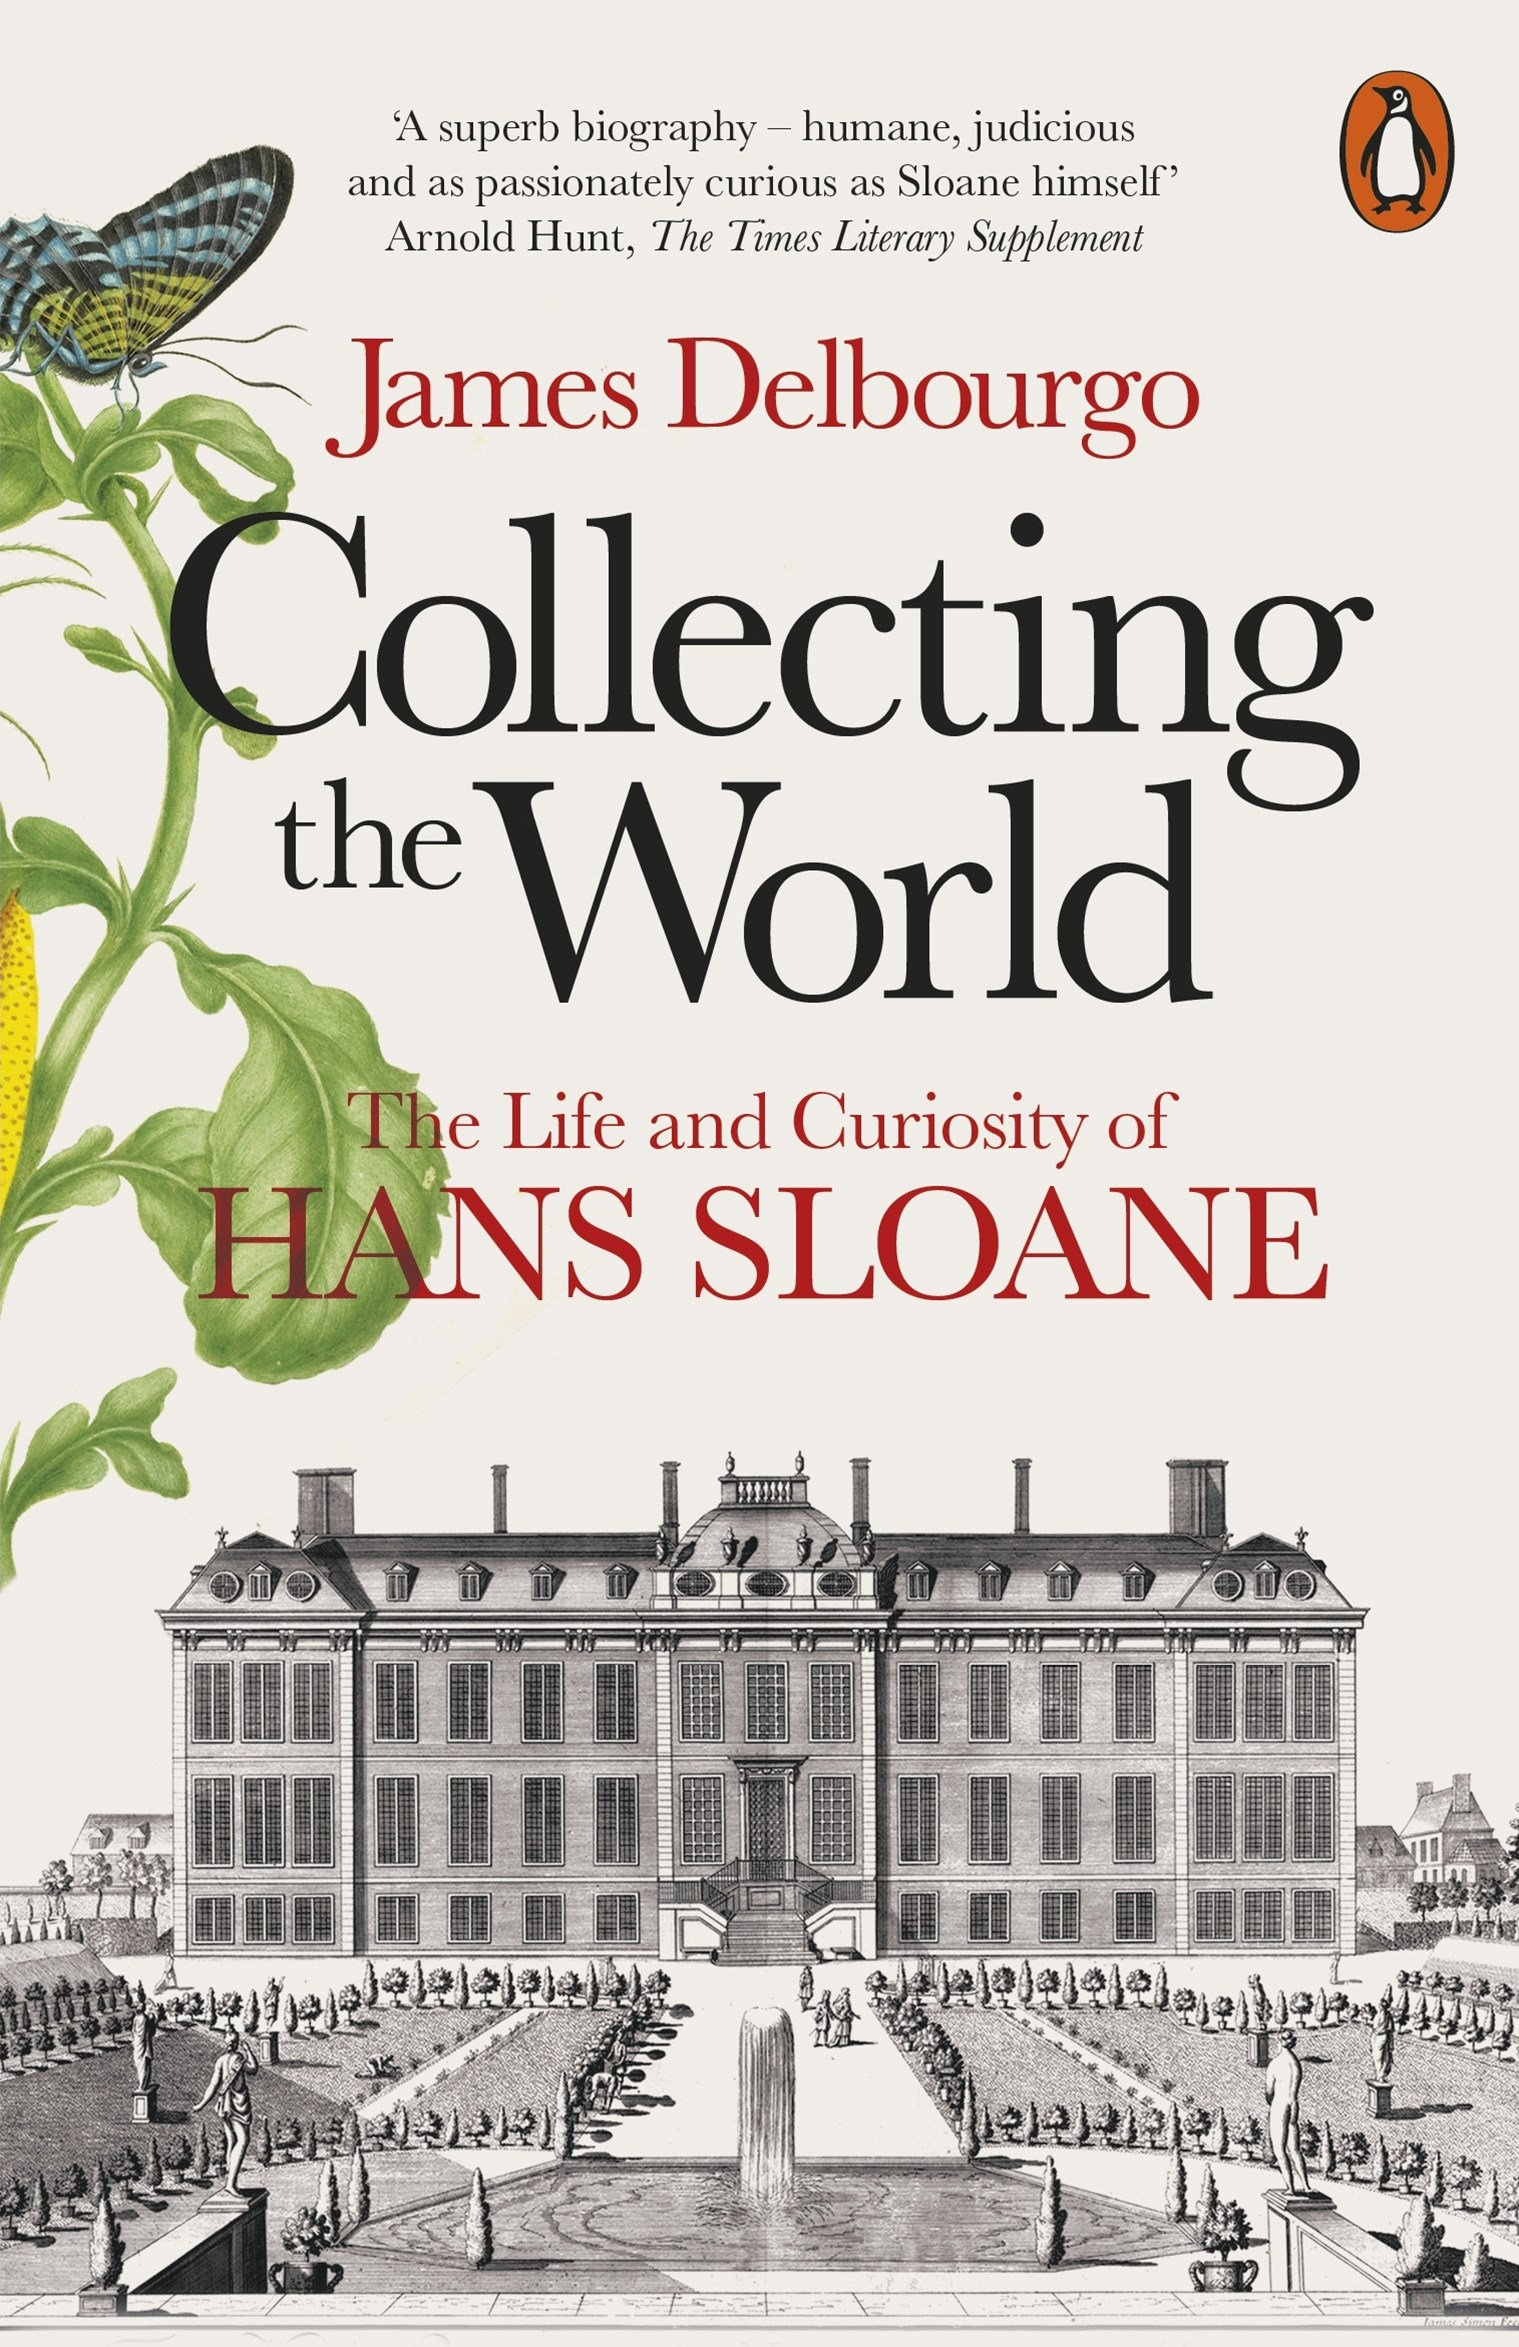 Sir Hans Sloane: Collector of the World